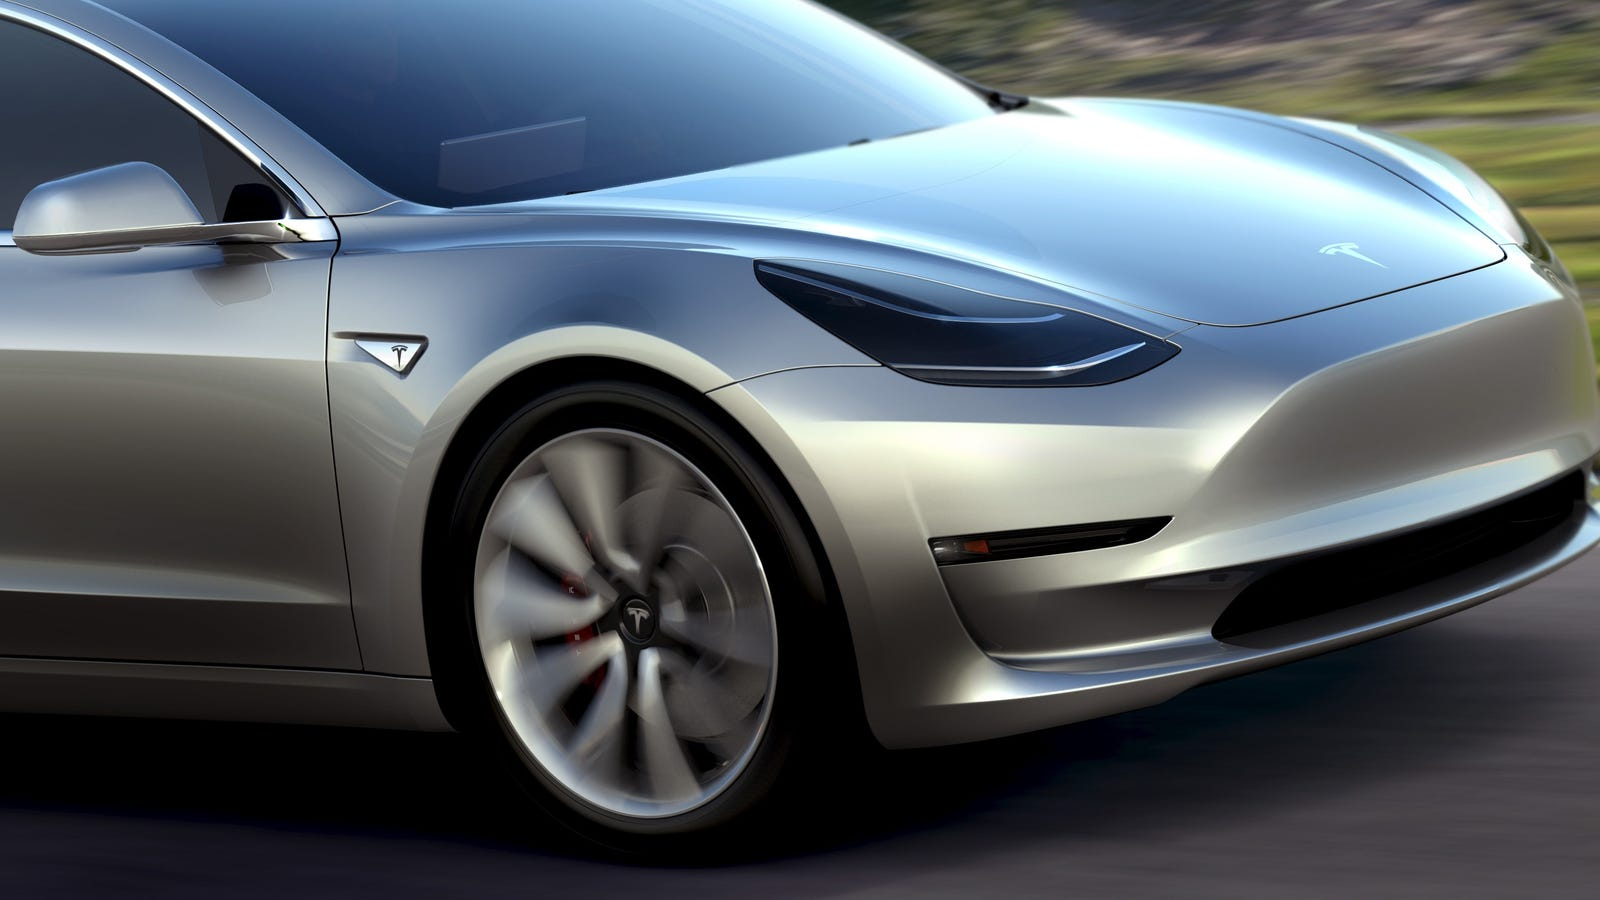 Design of tesla car - Here S How Tesla Is Designing The Model 3 To Be The Most Aerodynamic Car Ever Made